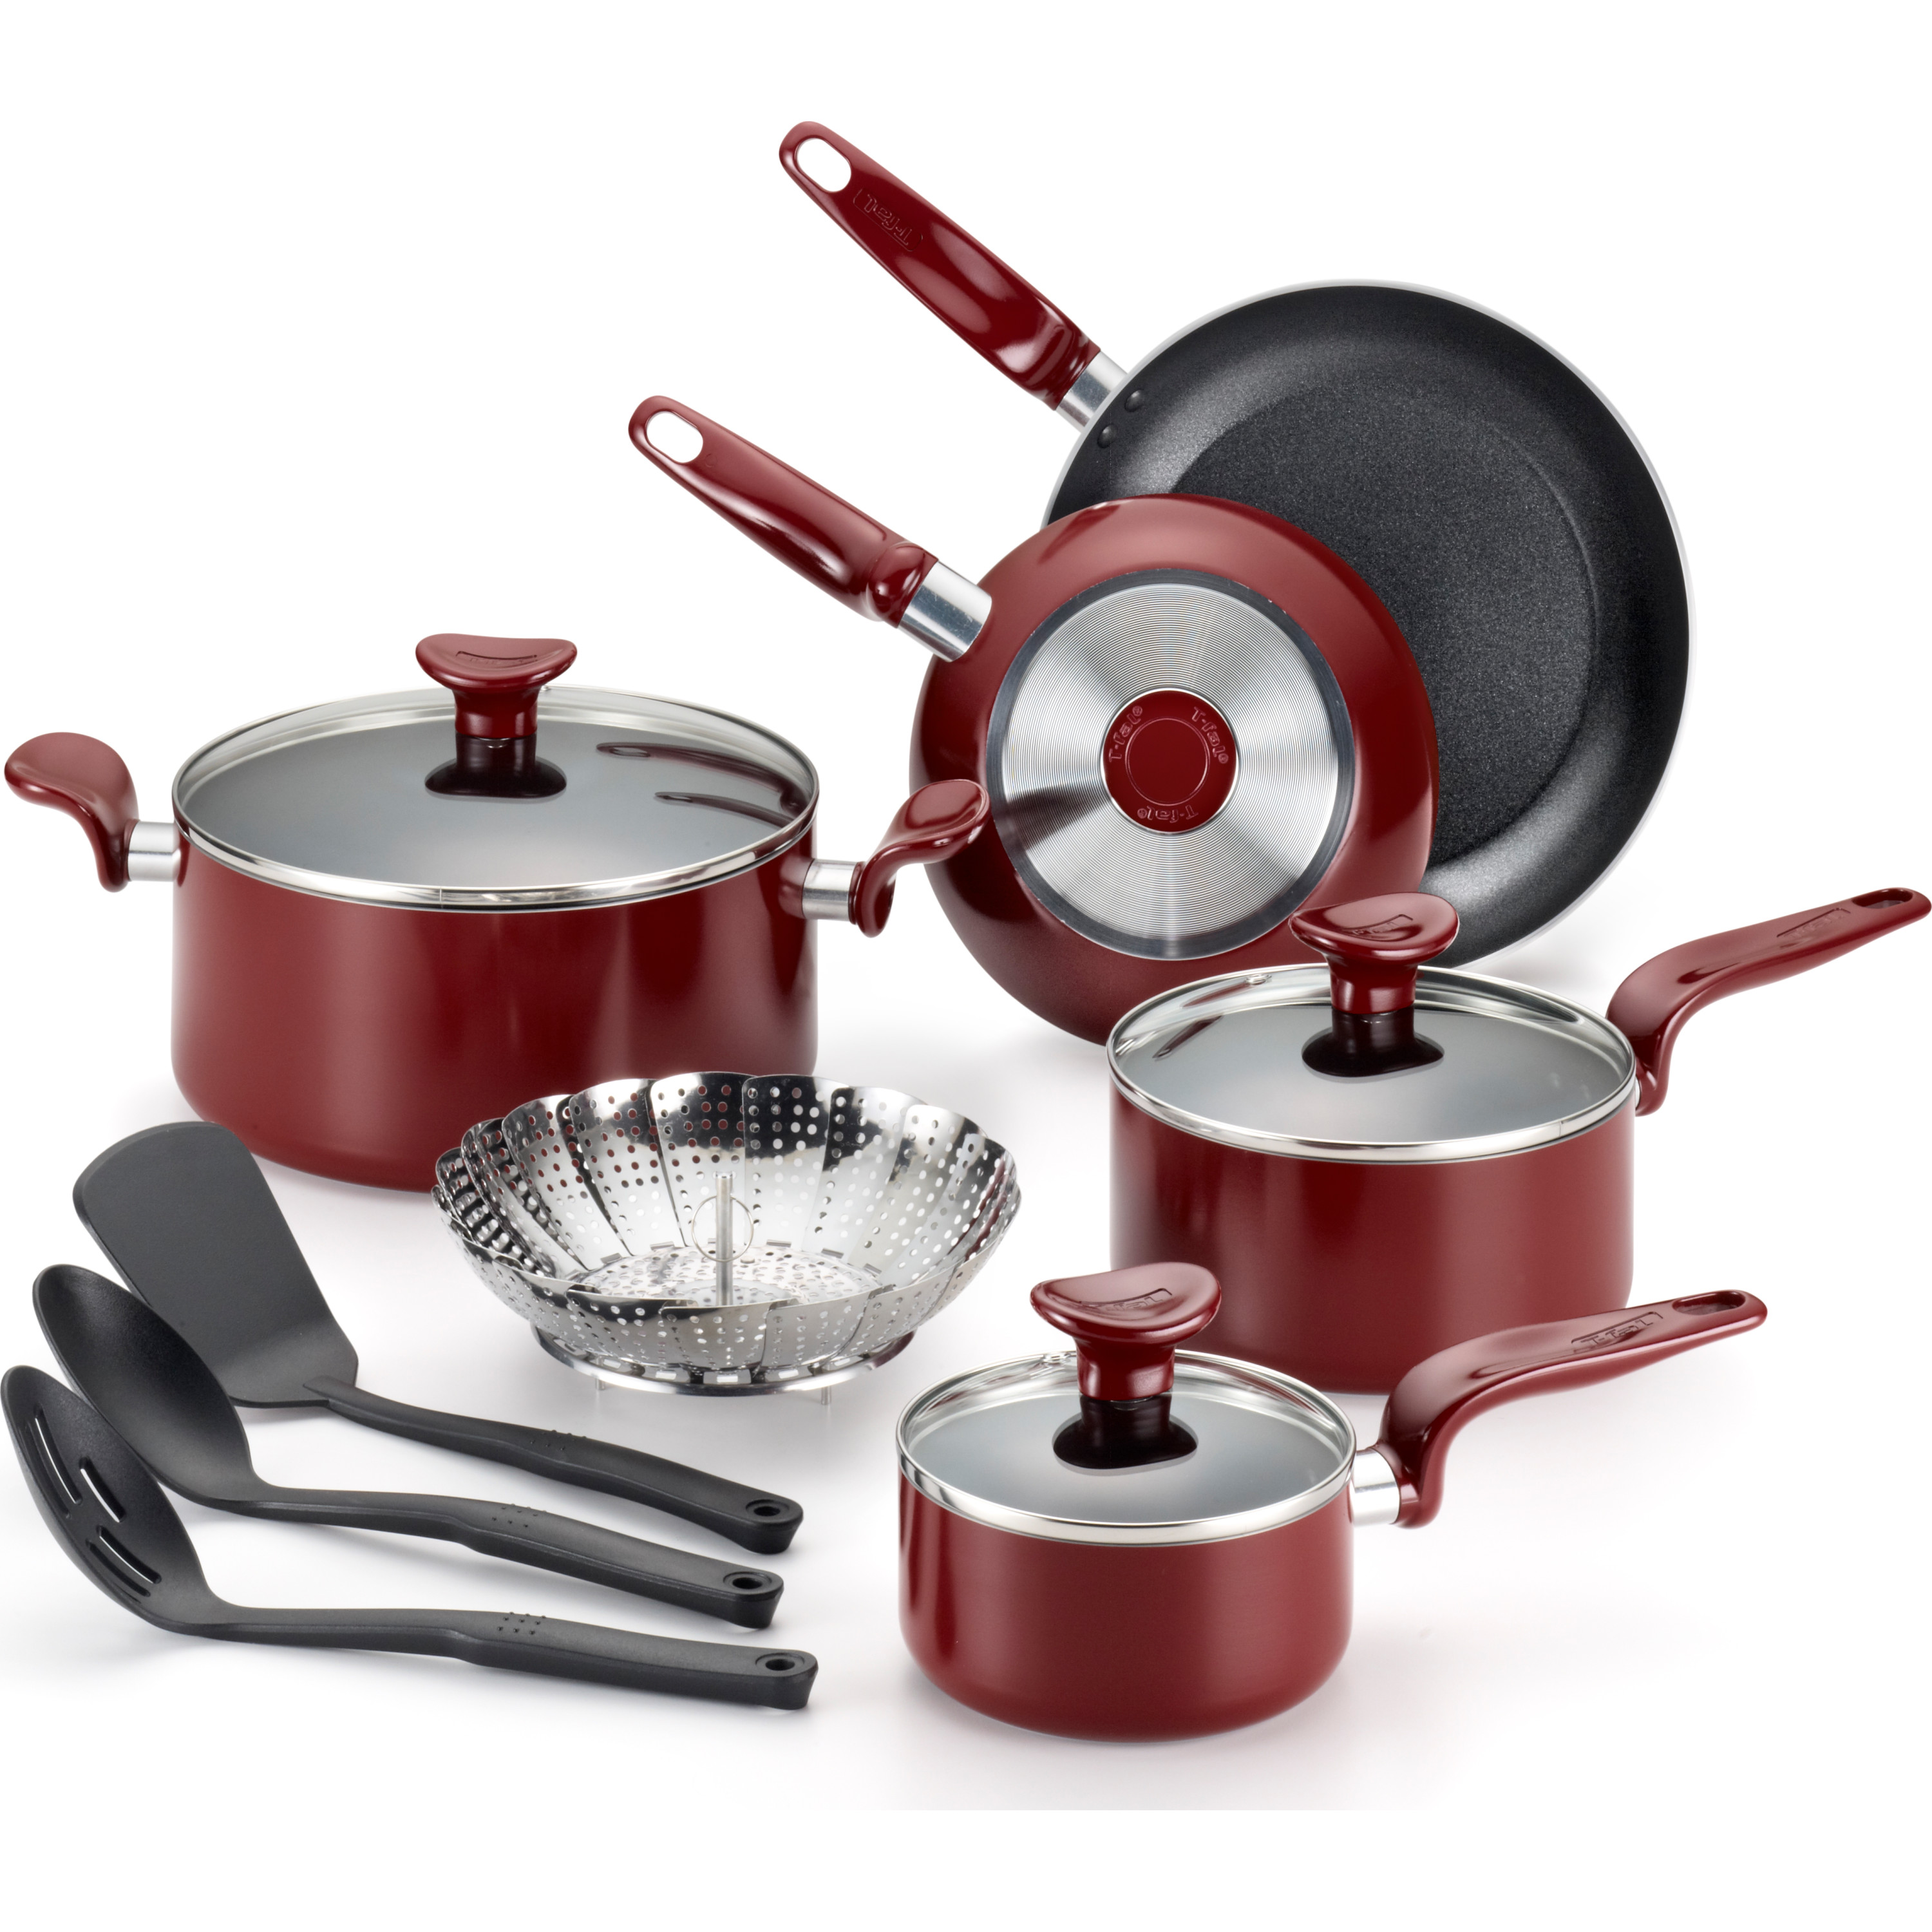 T-Fal Enjoy Nonstick 12-Piece Cookware Set, Red by T-FAL